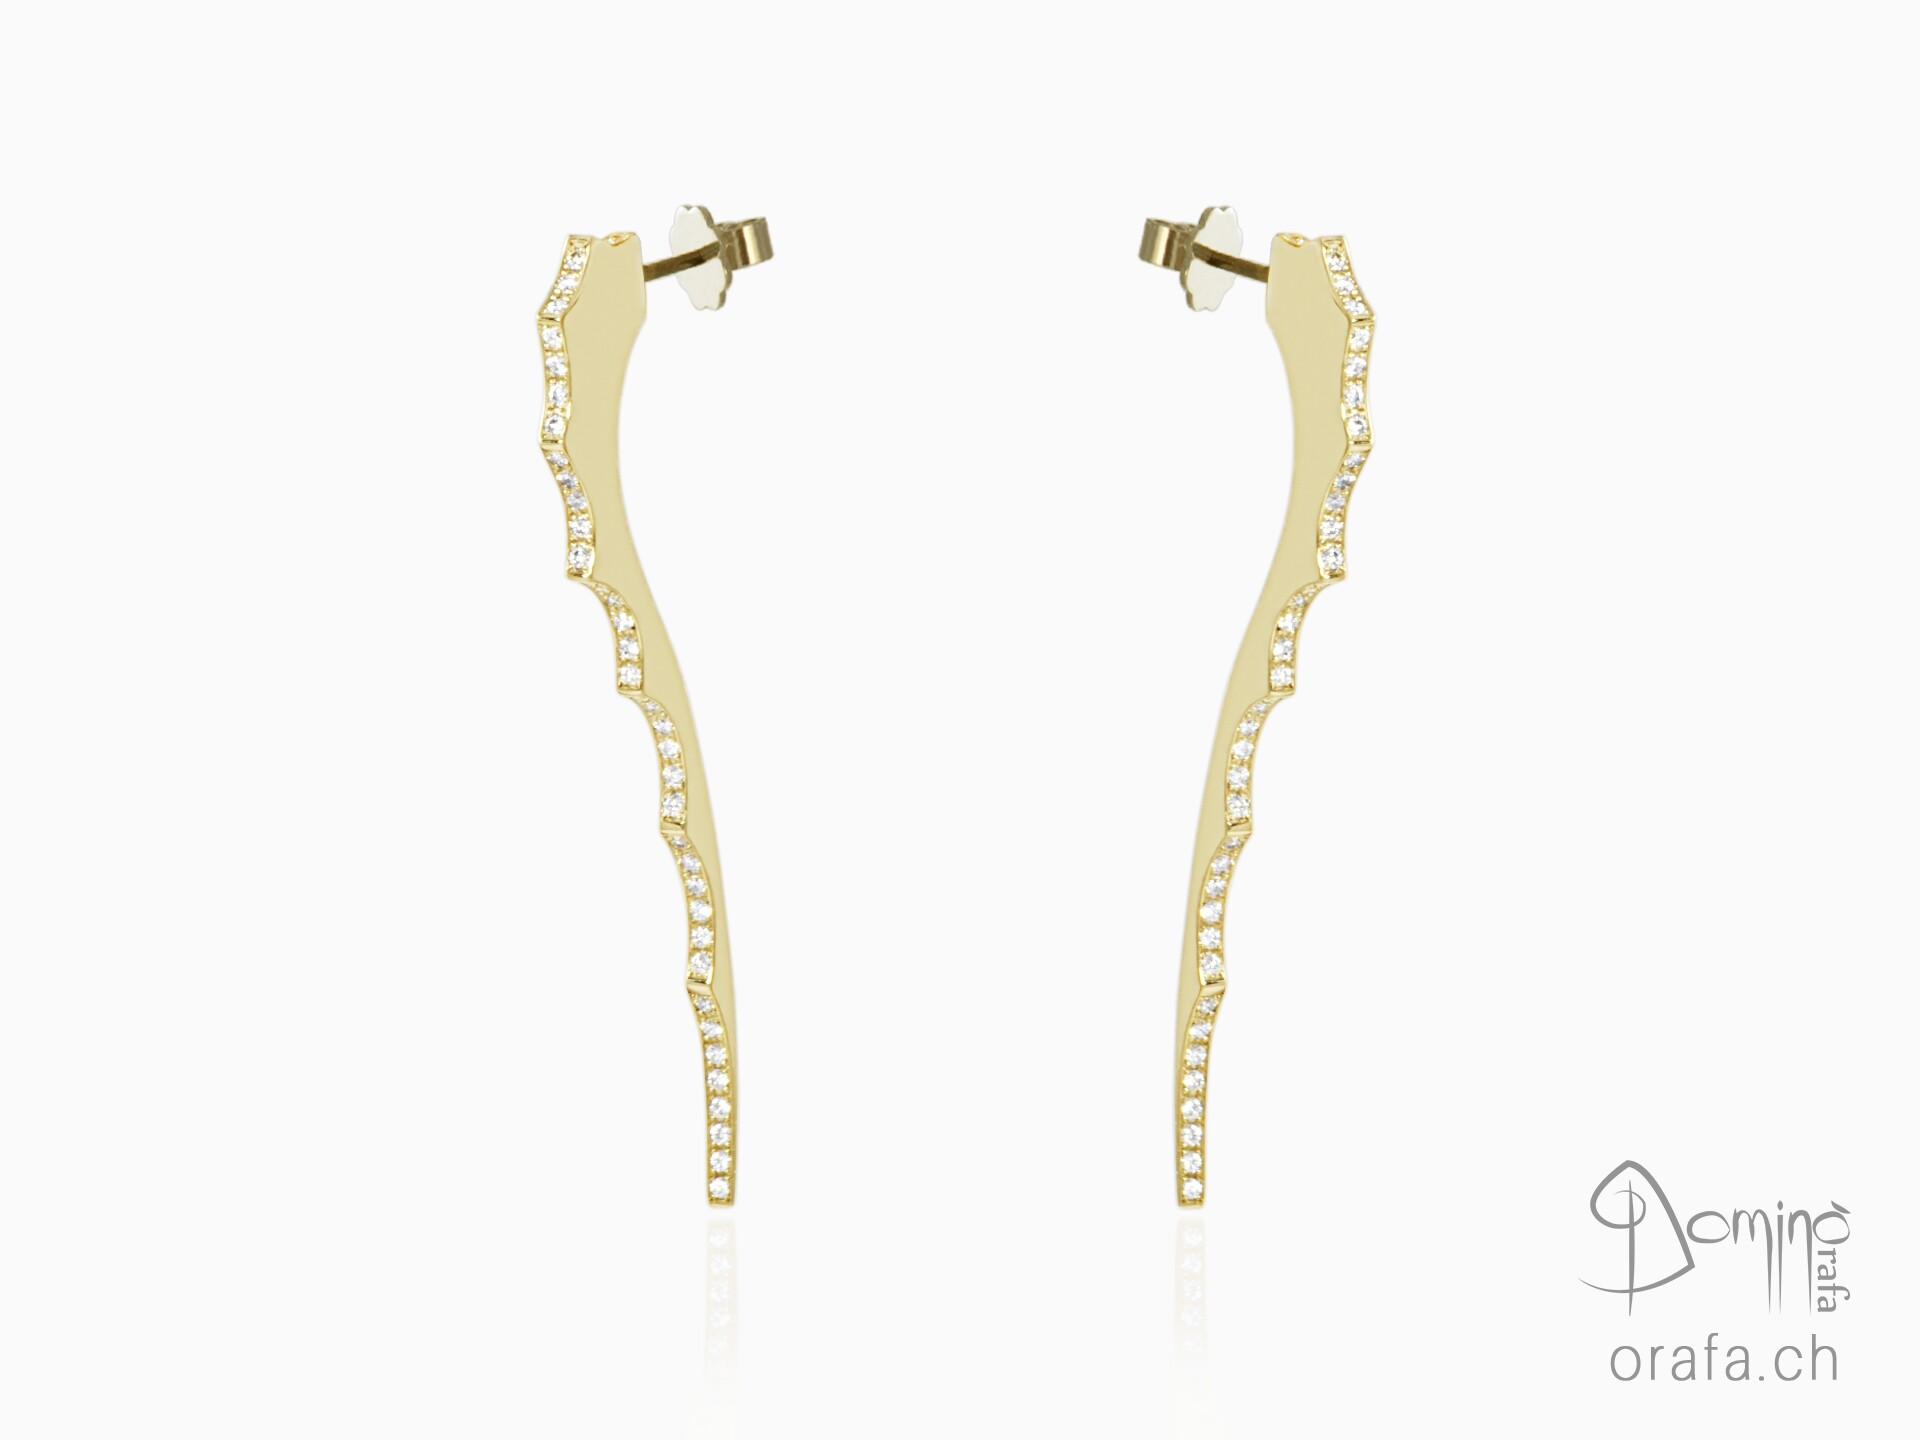 Diamonds Dragon's Tail earrings